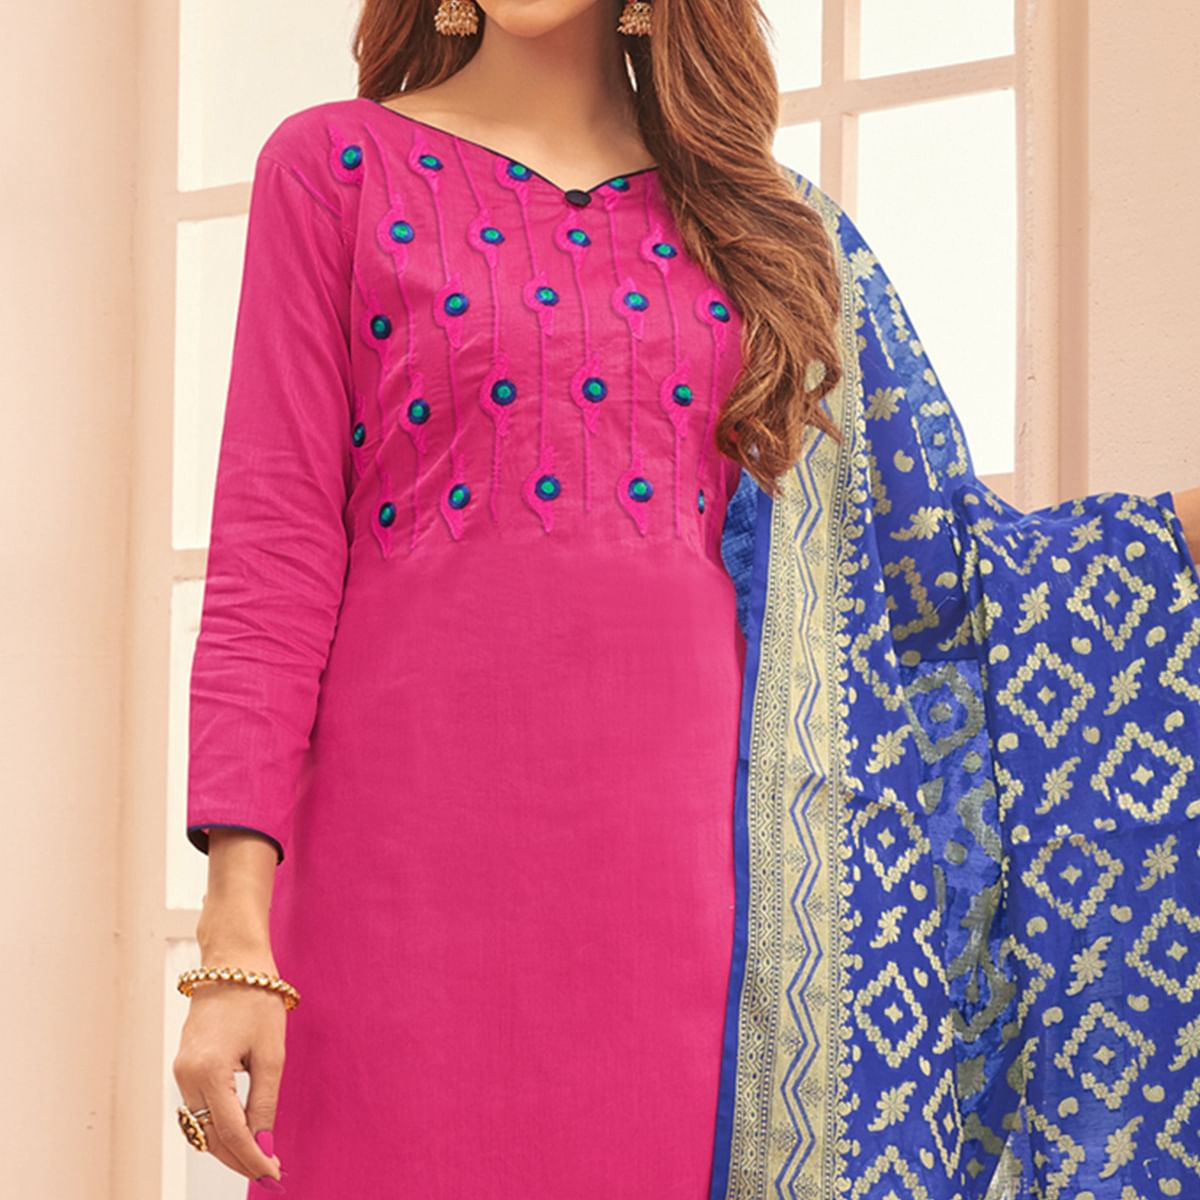 Glorious Rani Pink Colored Festive Wear Embroidered Cotton Dress Material With Banarasi Silk Dupatta